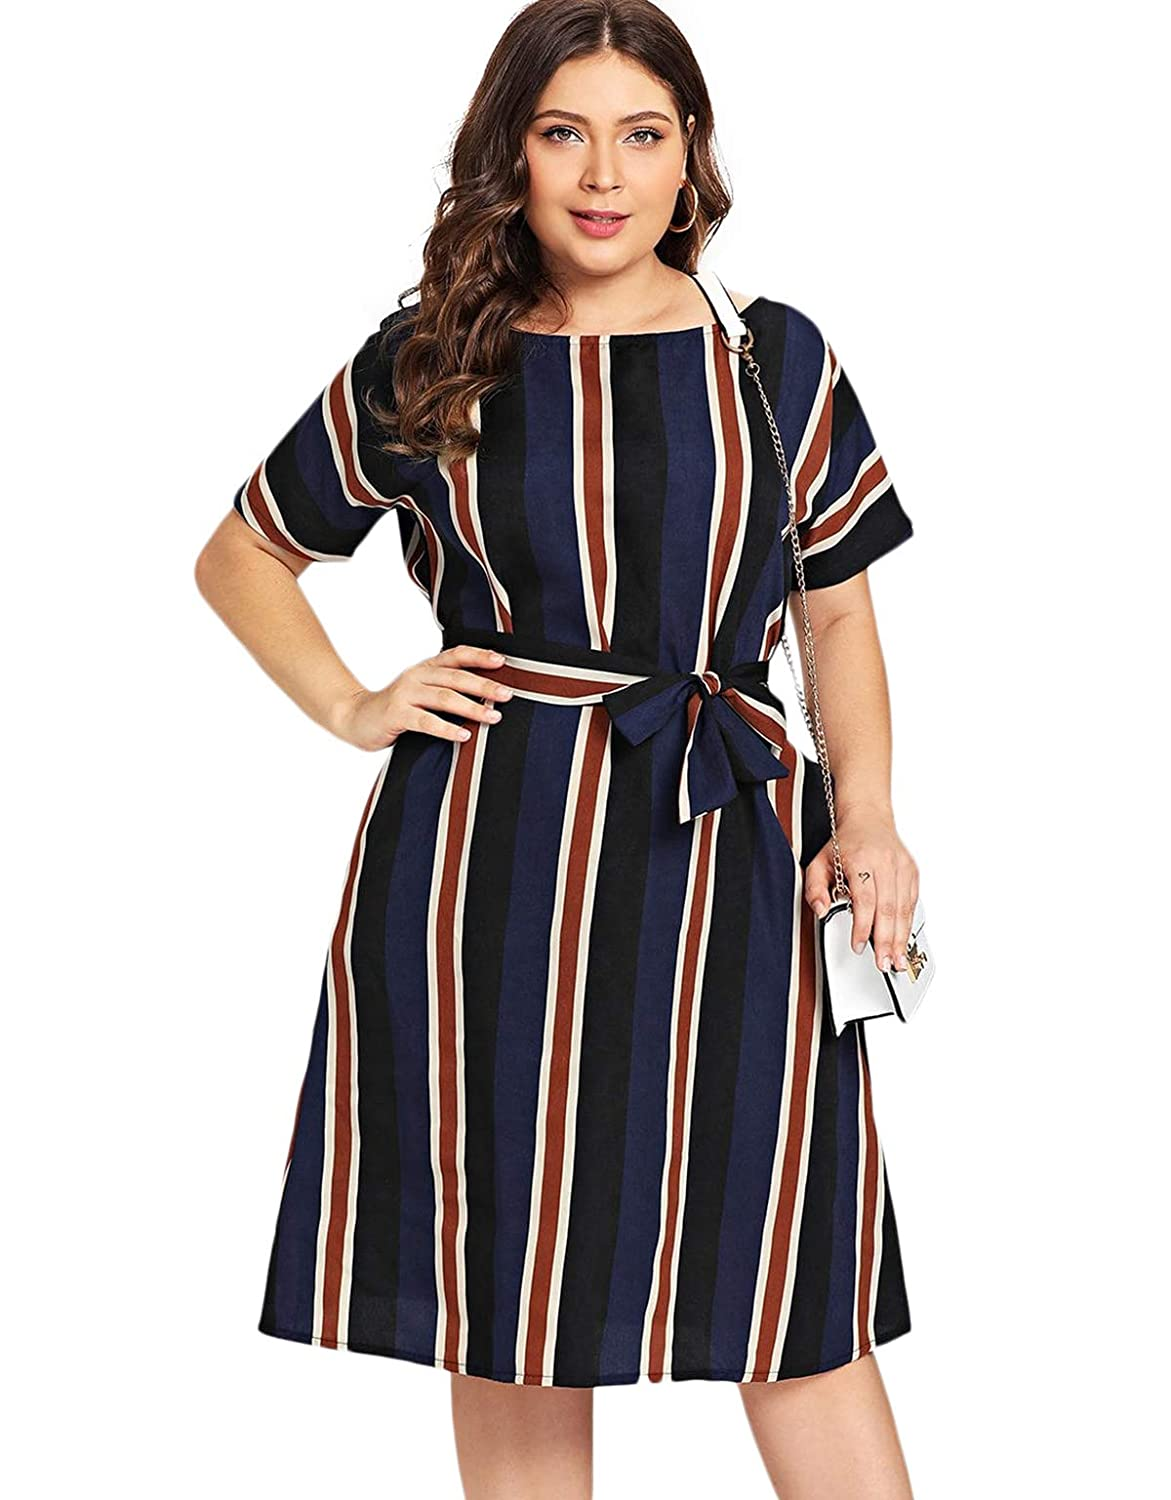 Milumia Women\'s Casual Plus Size Short Sleeve Colorblock Striped Belted  Midi Dress Navy 3XL